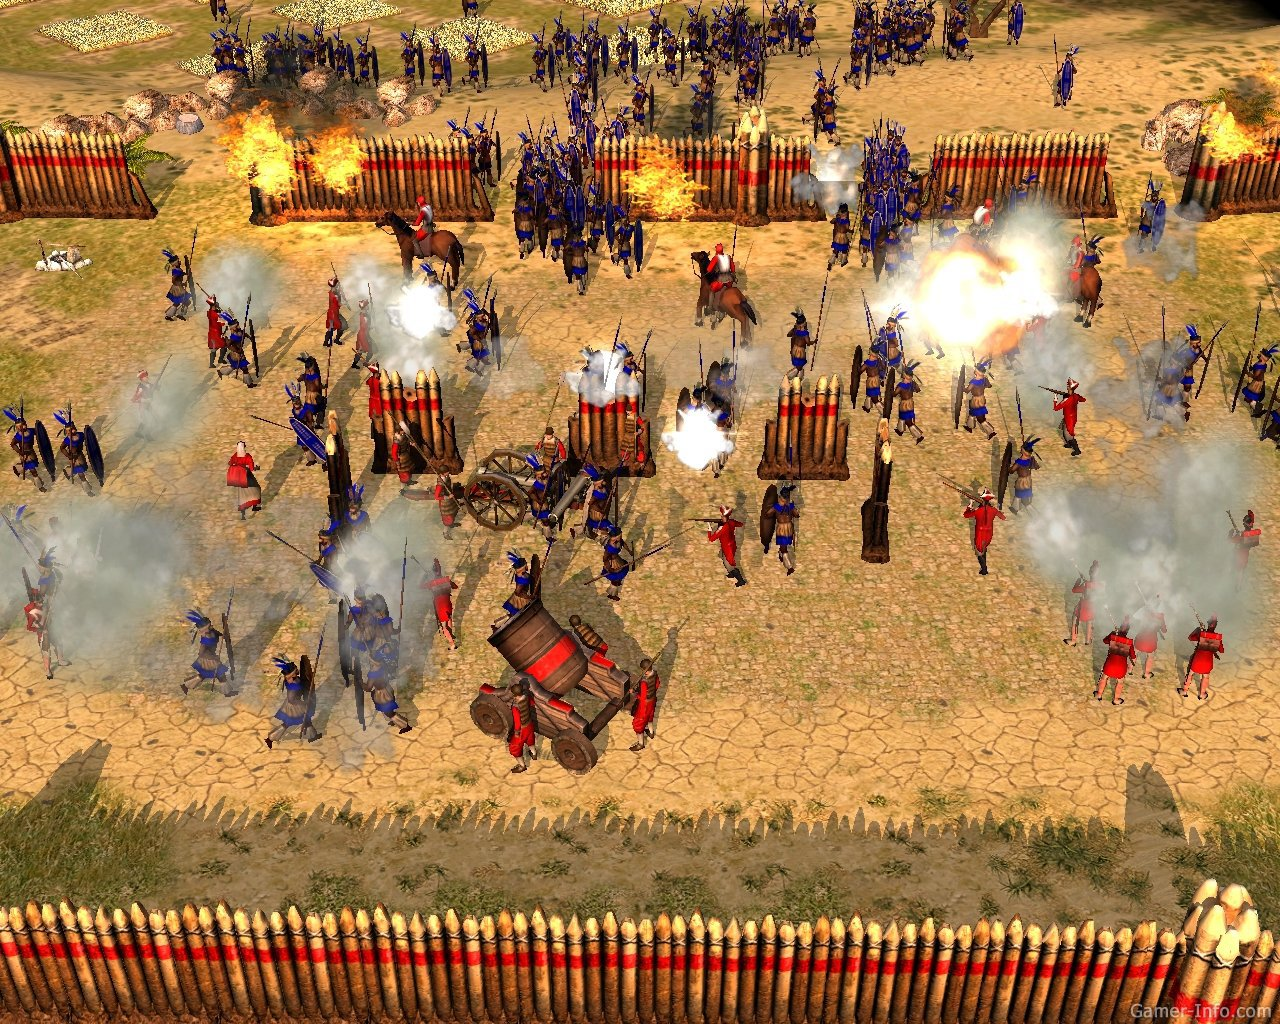 Empire Earth 2 Empire Earth 2 Art of Supremacy (2007/RUS) .